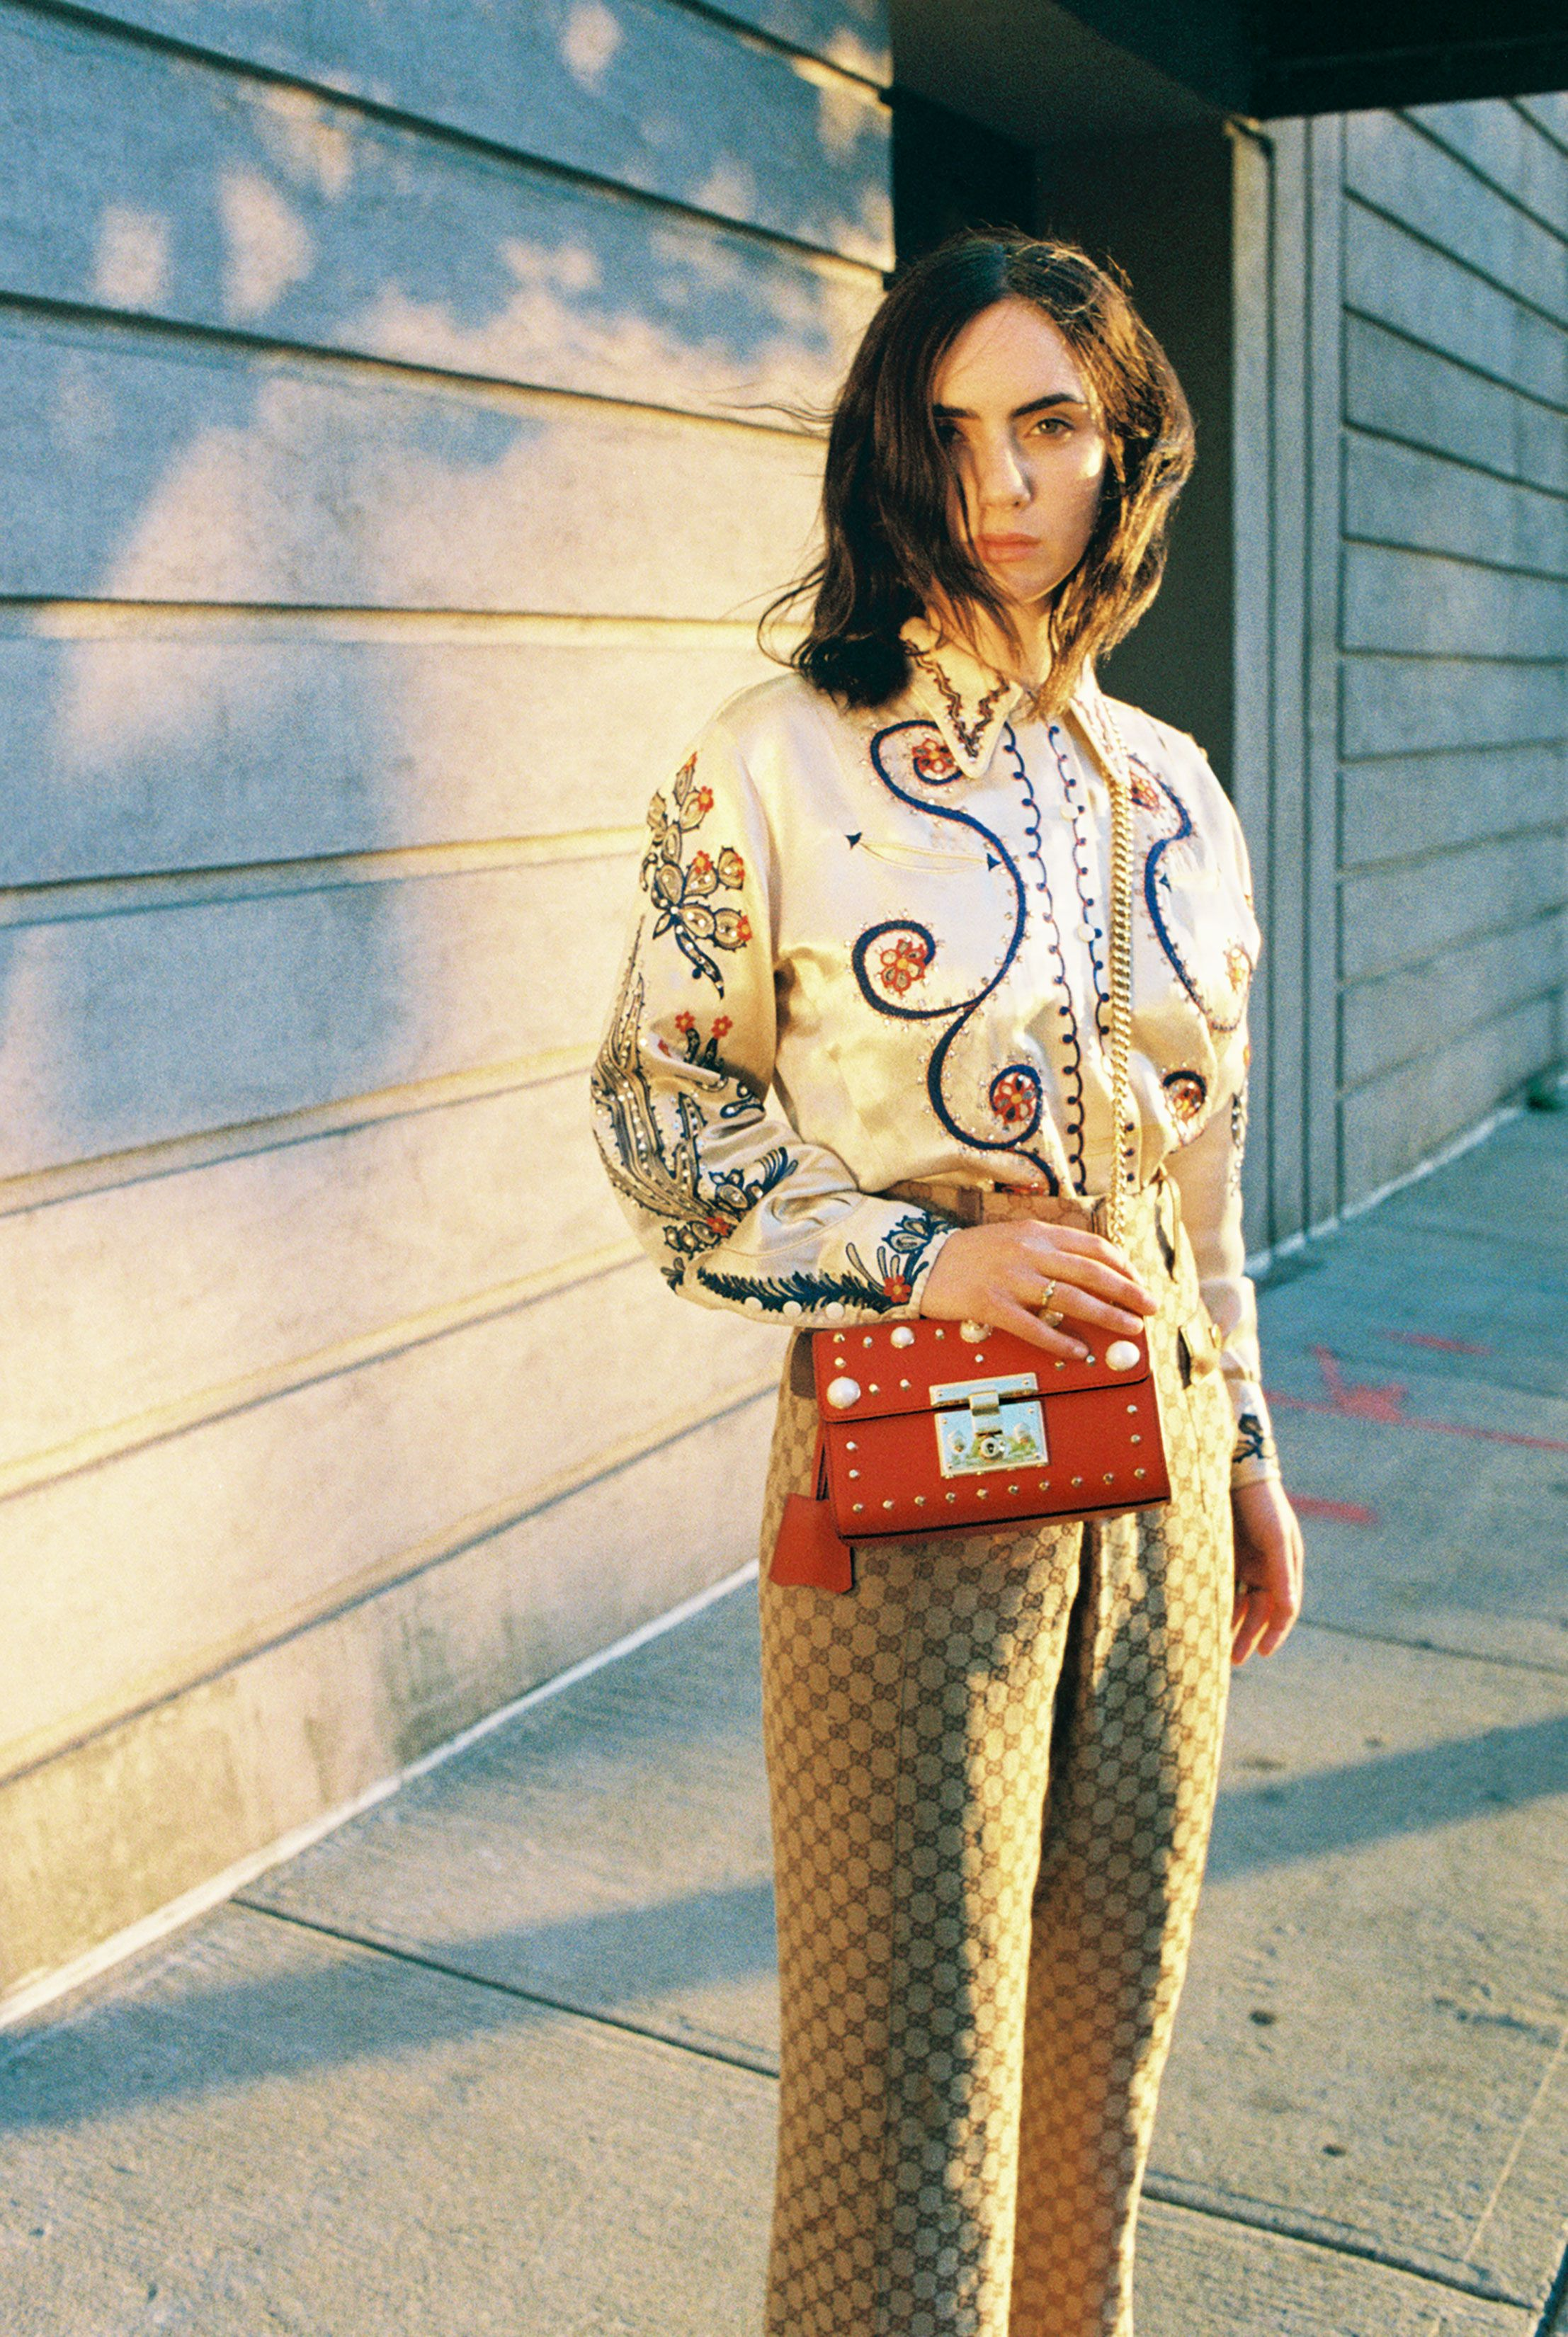 cd55bc57 Zoe Bleu Sidel, 21, in her own vintage shirt, vintage Gucci trousers and  Padlock bag with pearls and studs. Produced by Vogue for Gucci.